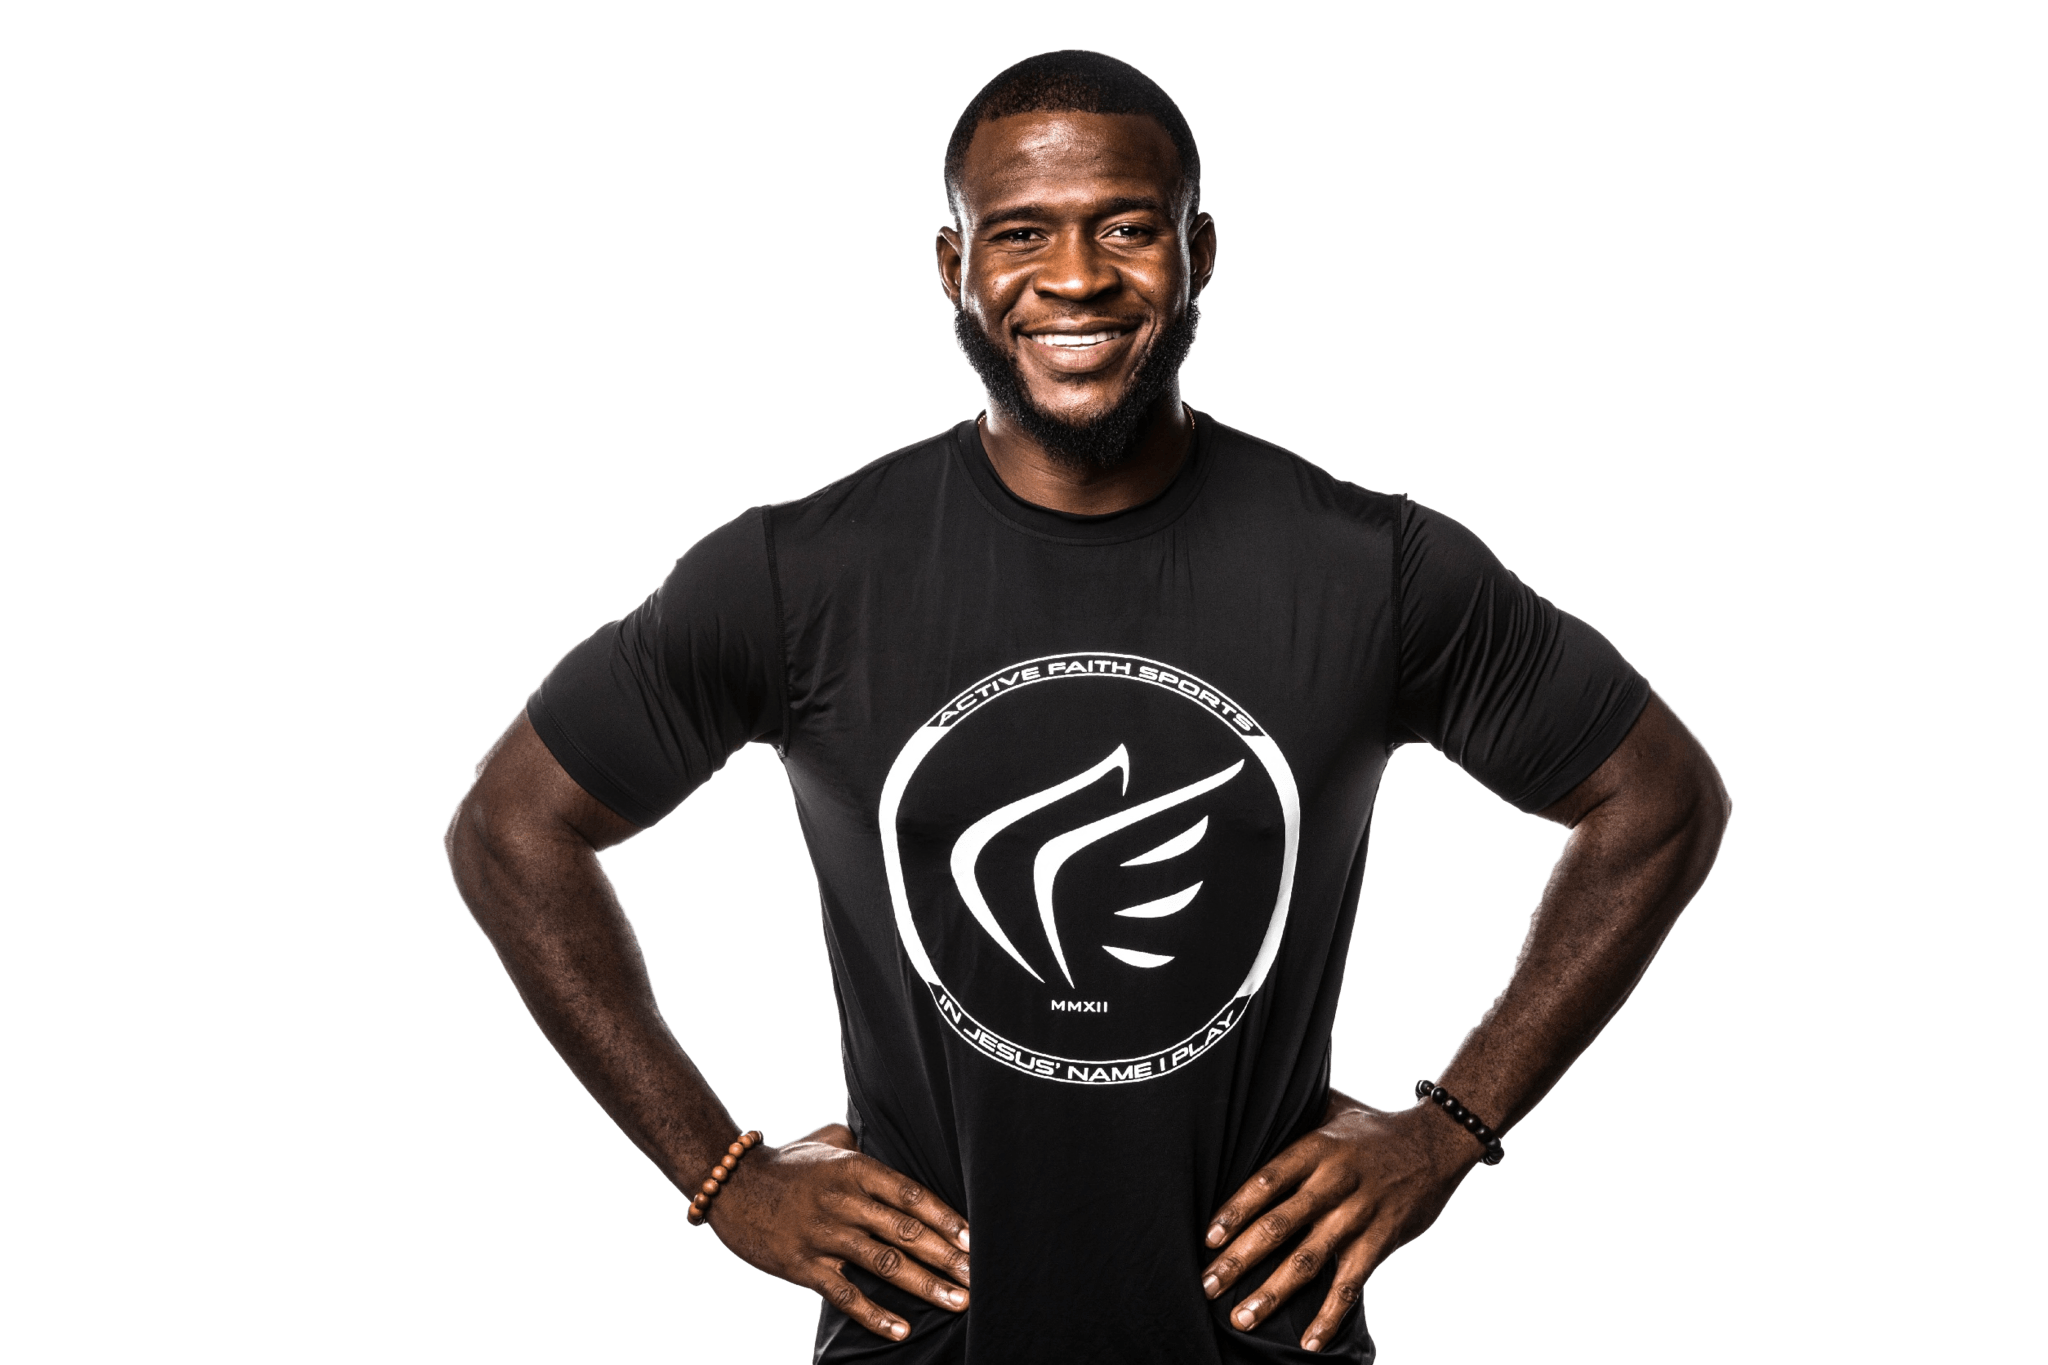 Active Faith Seal Performance Shirt